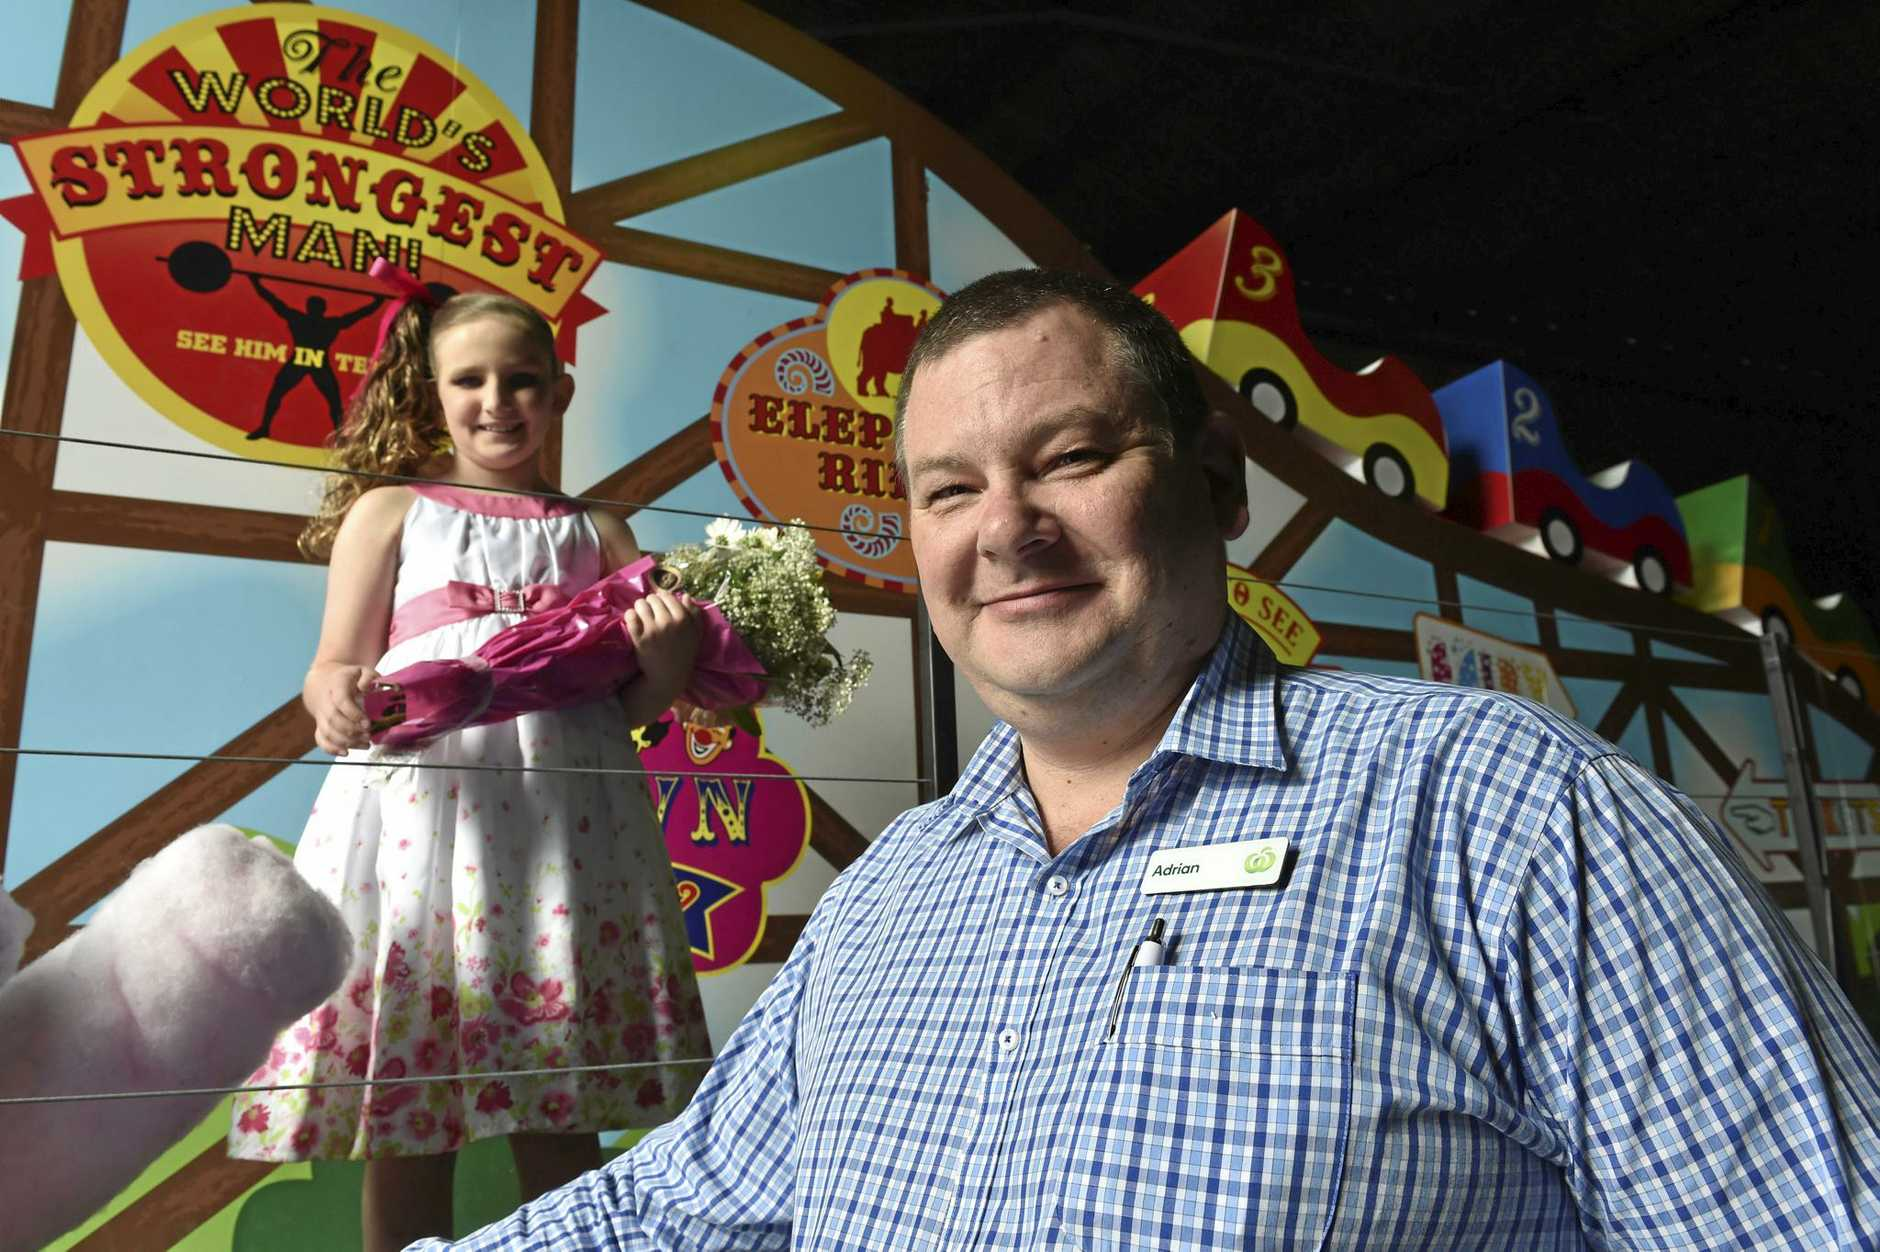 Dalbys Johanna Sinnamon with Range Woolworths store manager Adrian Maynard. Johanna is the Childrens Hospital ambassador and will ride on the circus themed float in the Grand Central Floral Parade. Carnival of Flowers 2016.